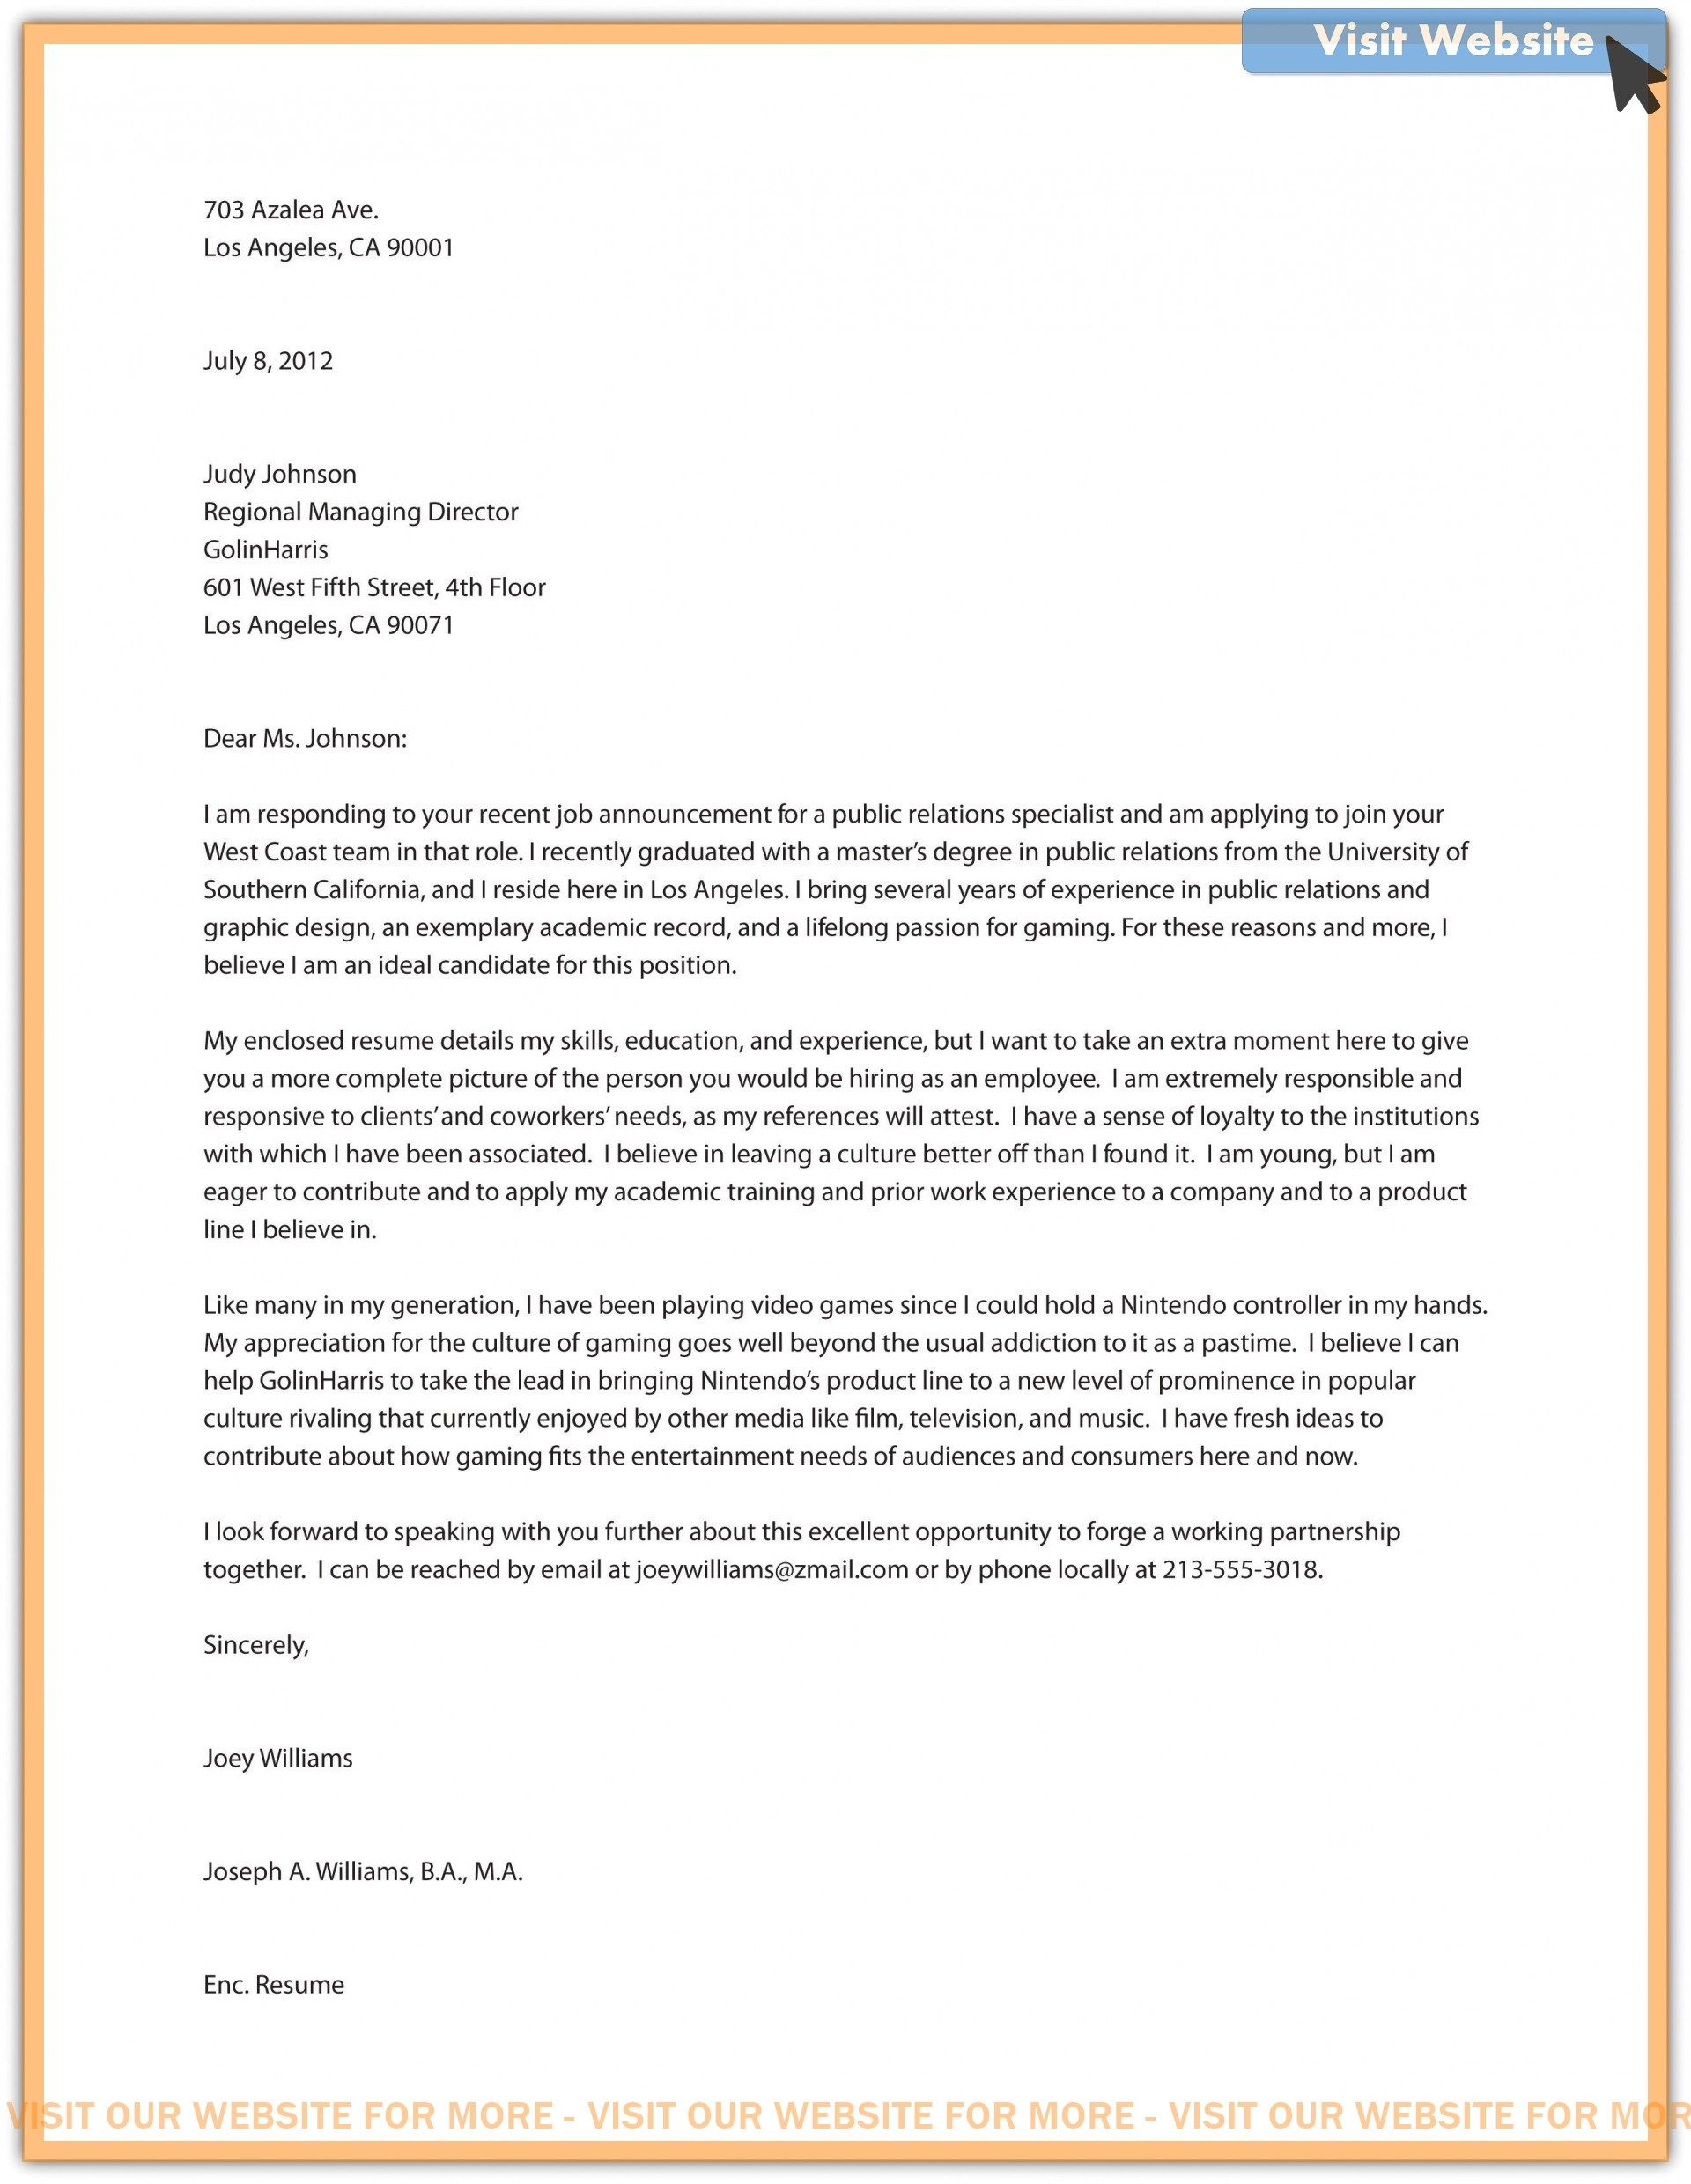 mba admission cover letter sample in 2020 Cover letter